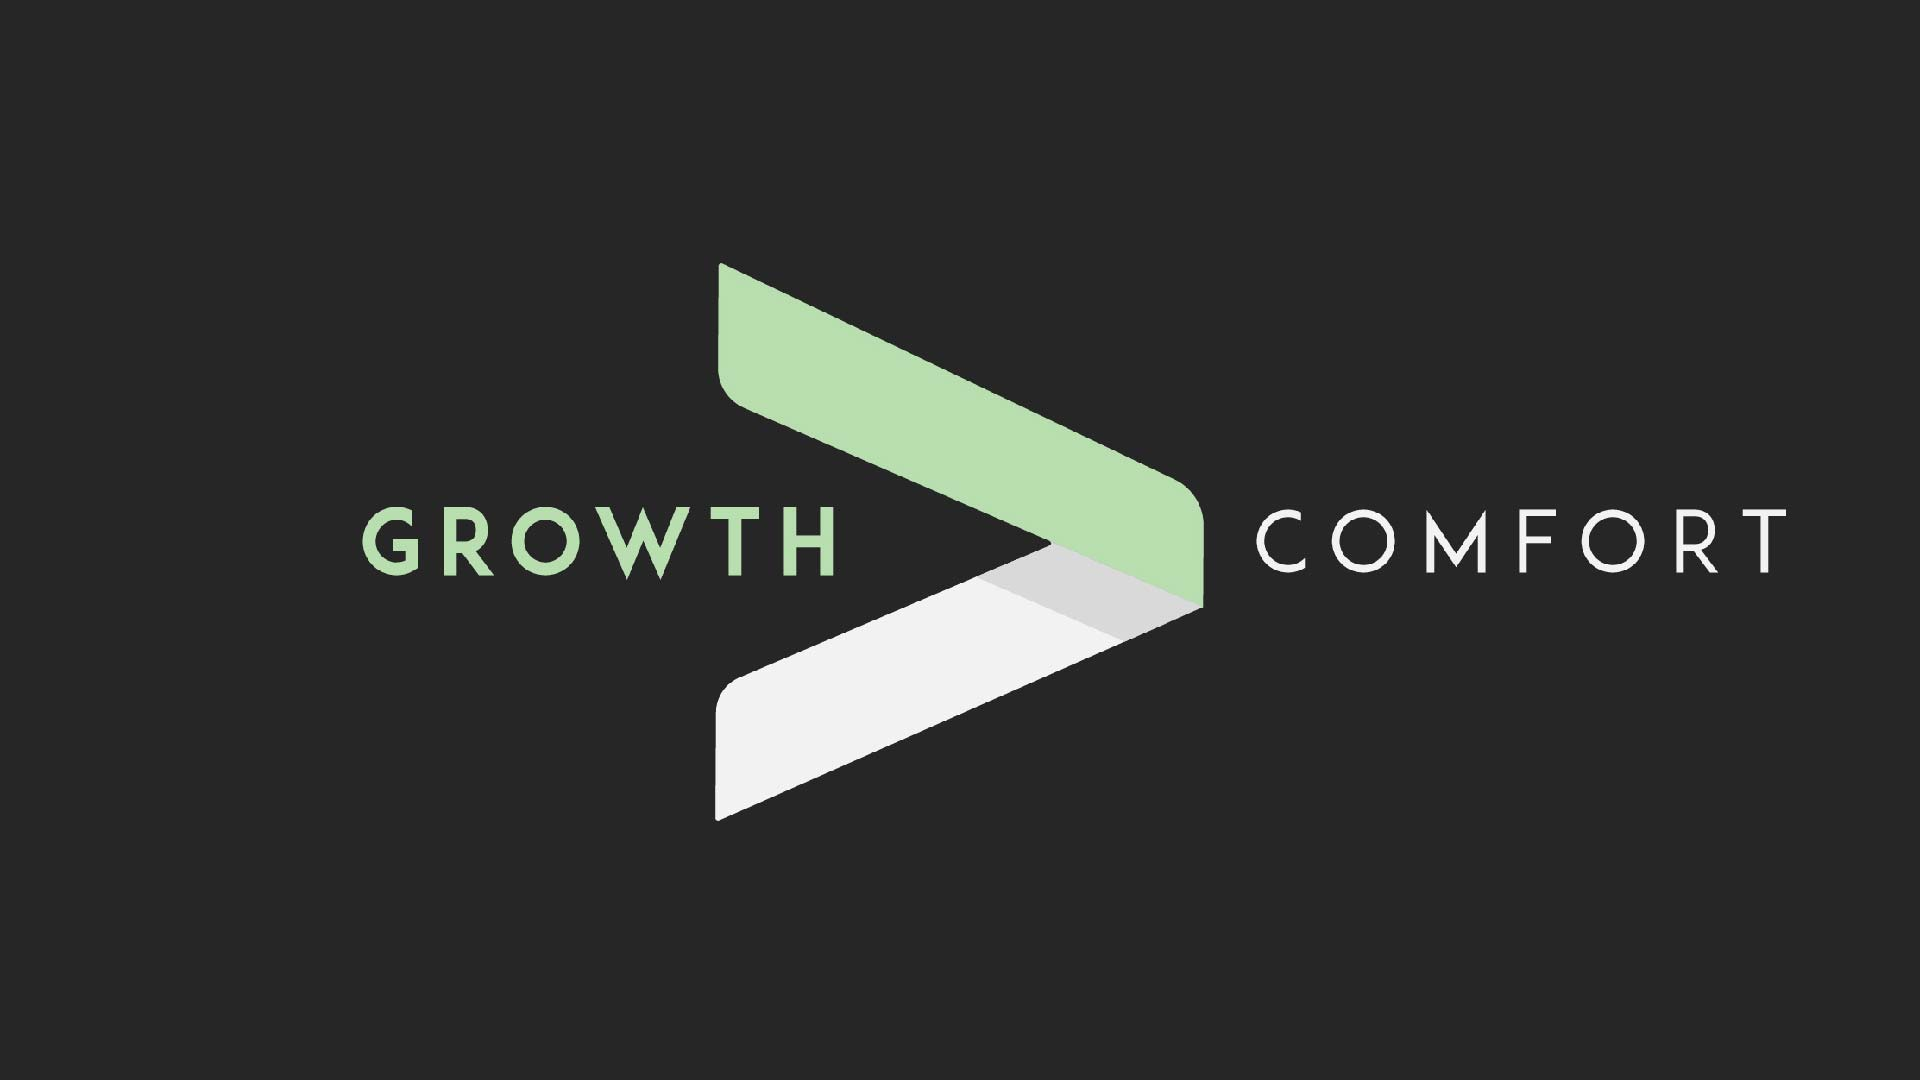 wee4growthcomfort-01